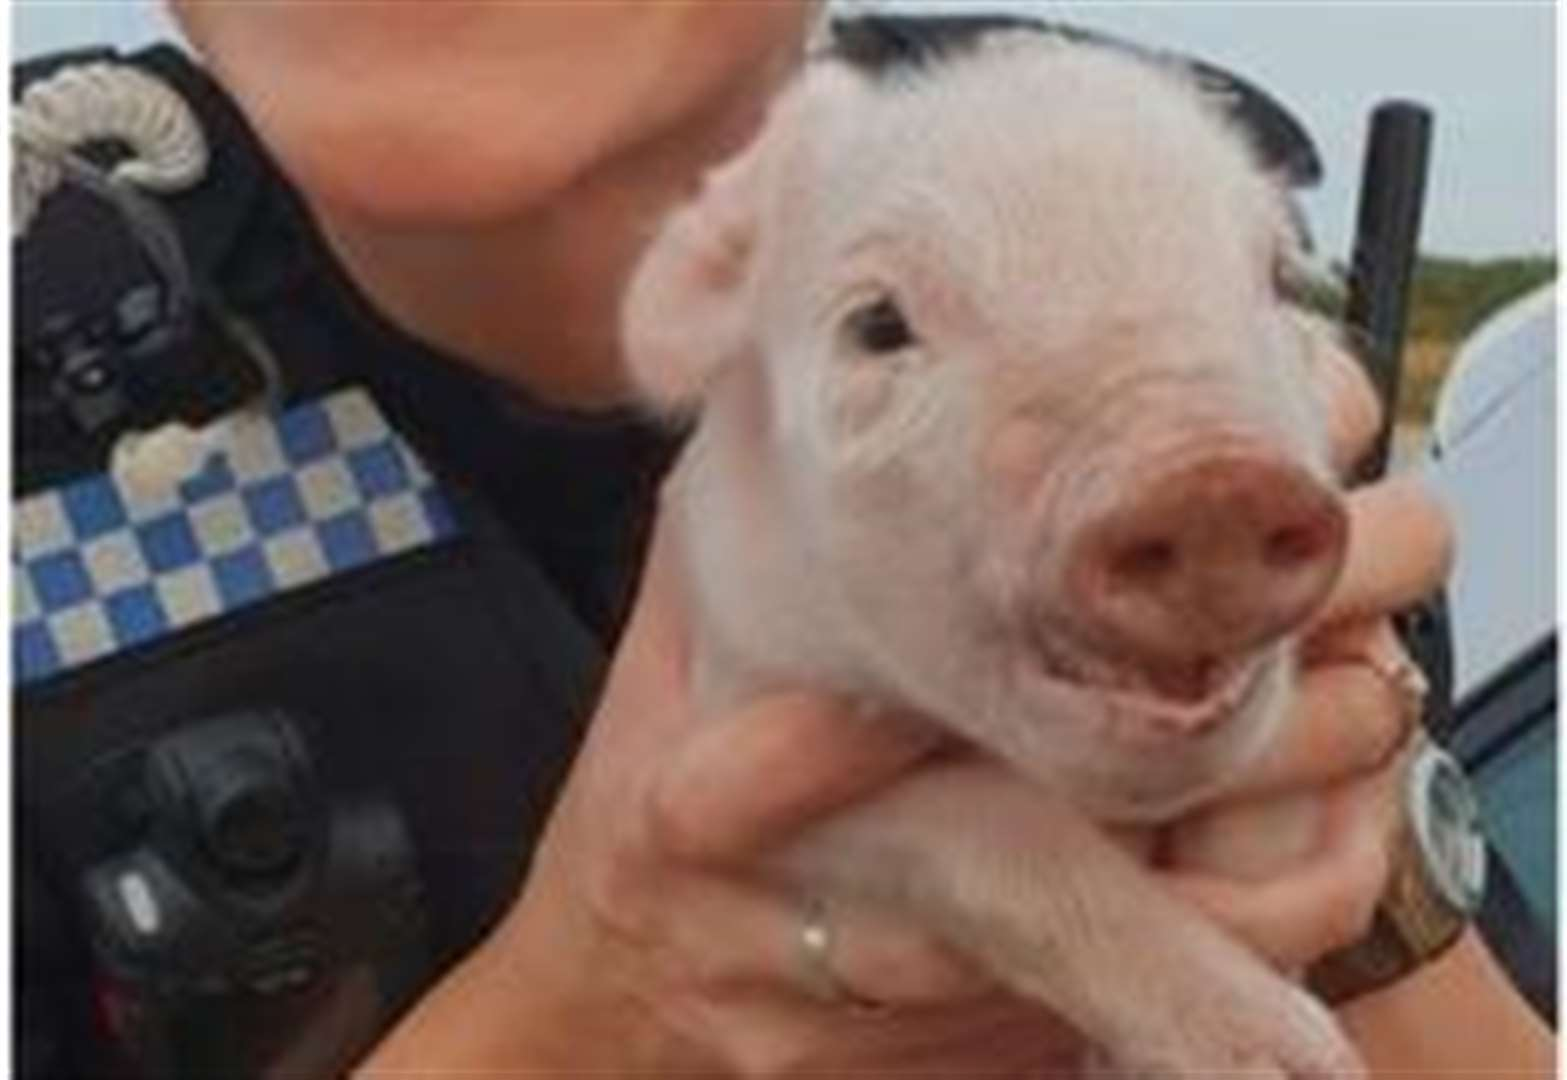 Thetford police help in getting little piggy all the way home